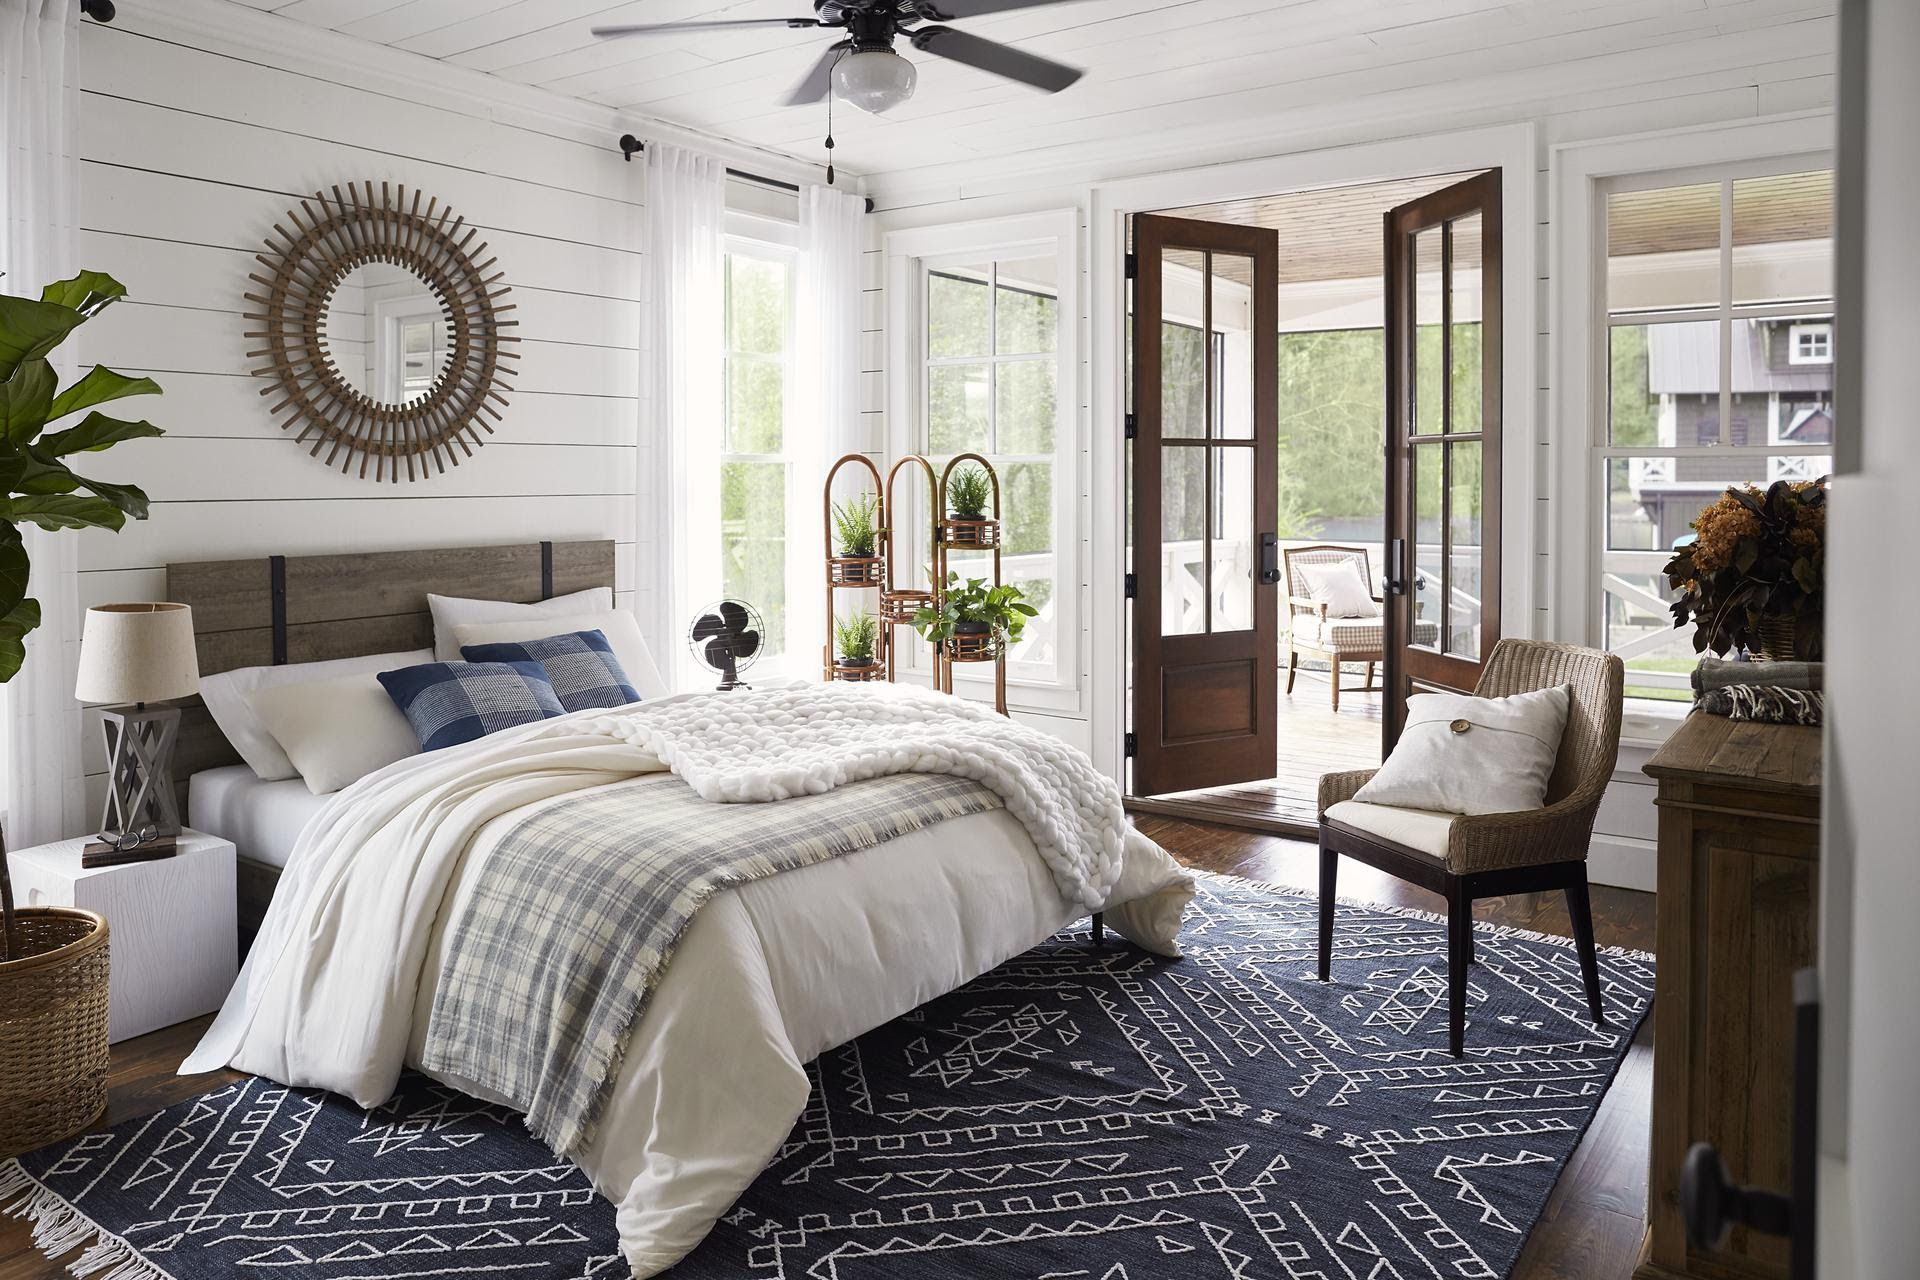 Lake House Bedroom Paint Color Ideas, Furniture & Decor Ideas #masterbedroompaintcolors